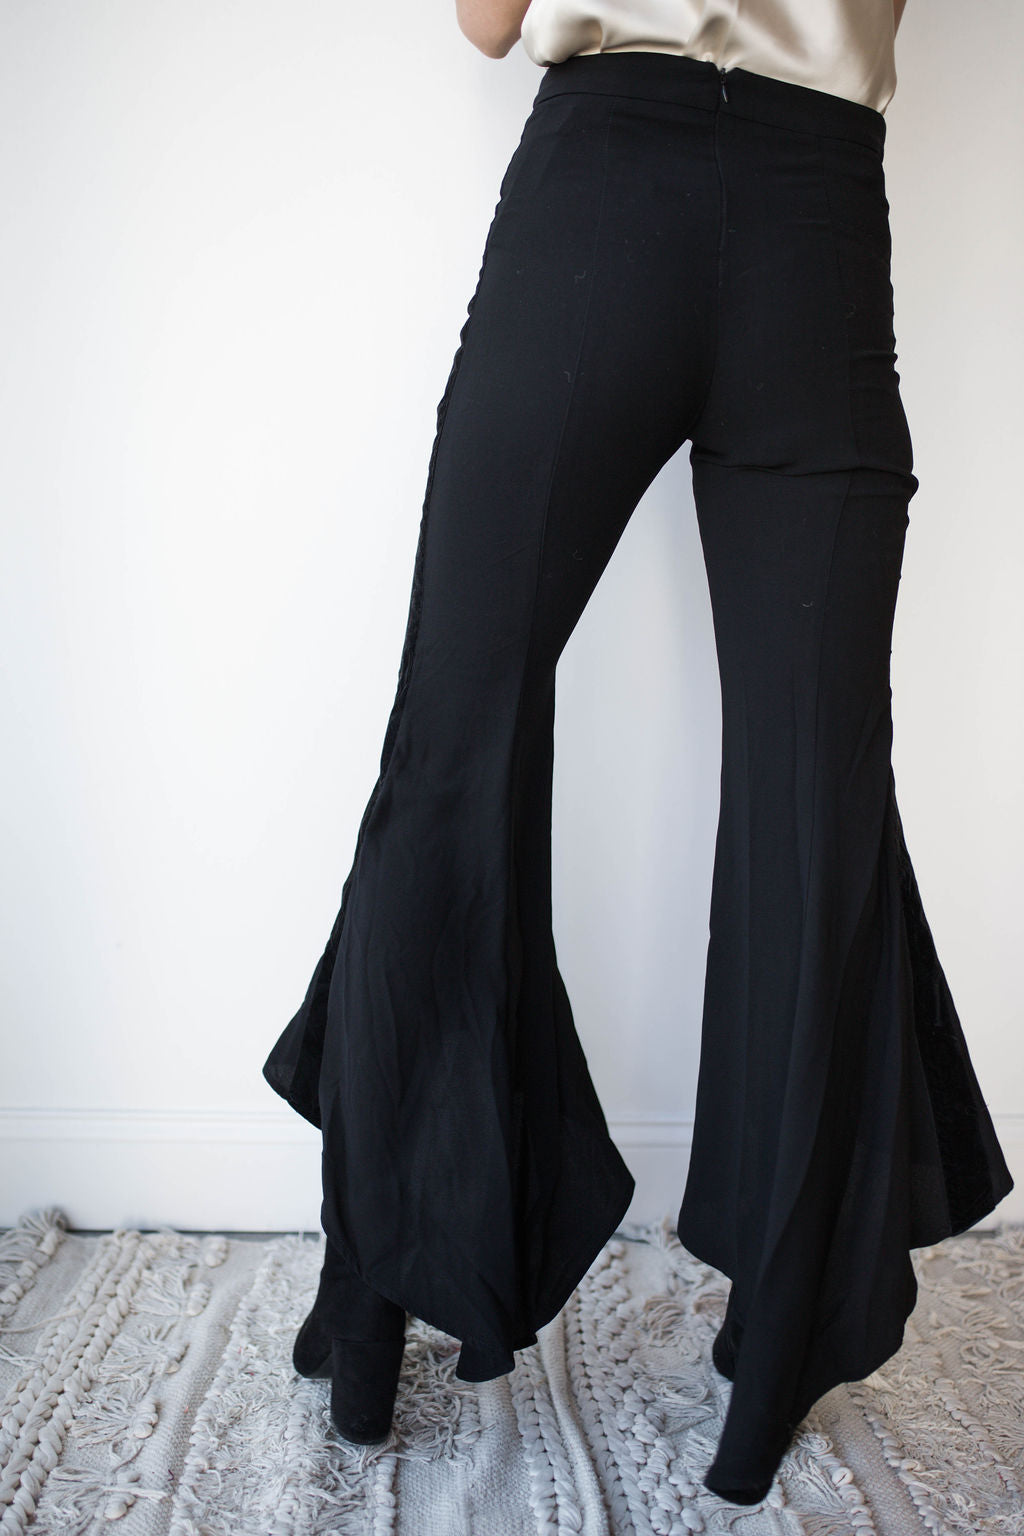 [shop name], she's got flare pants